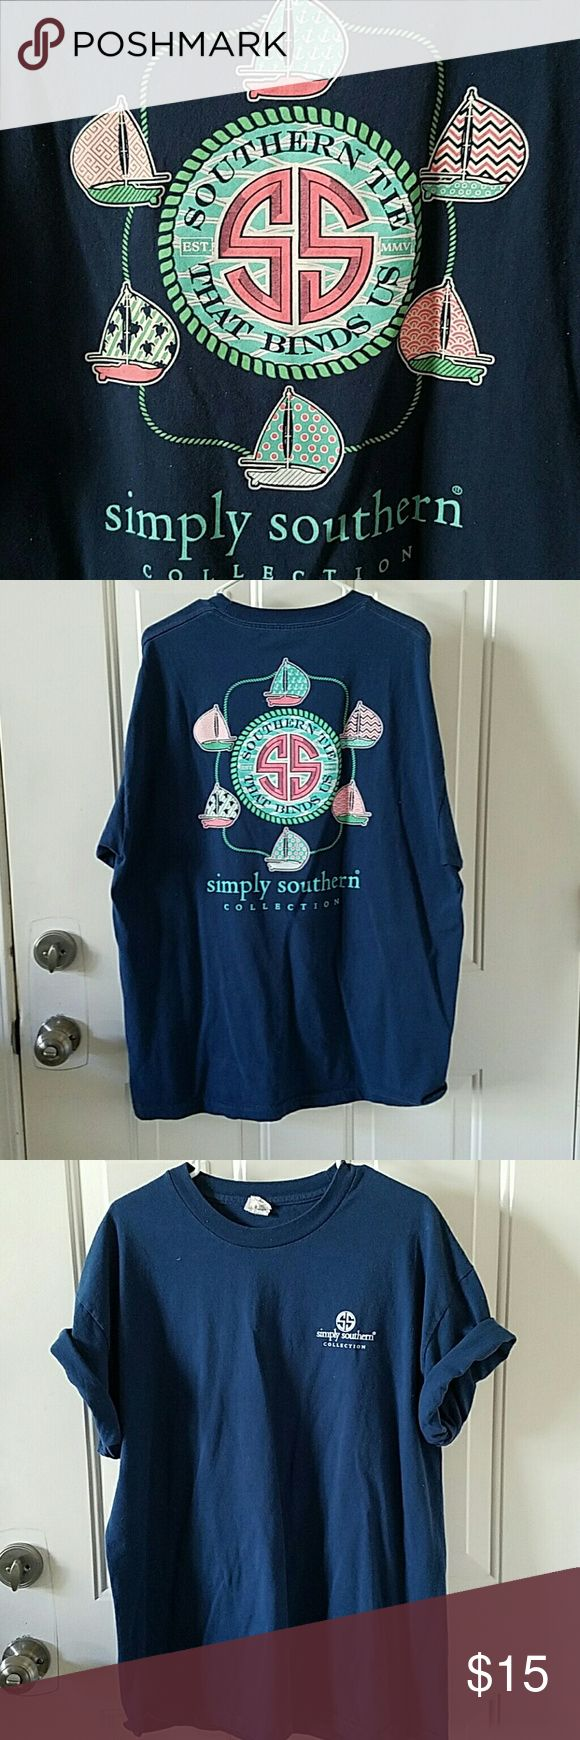 Simply Southen Navy Tee XL Unisex tee. Sailboats on back. simply southern Tops Tees - Short Sleeve